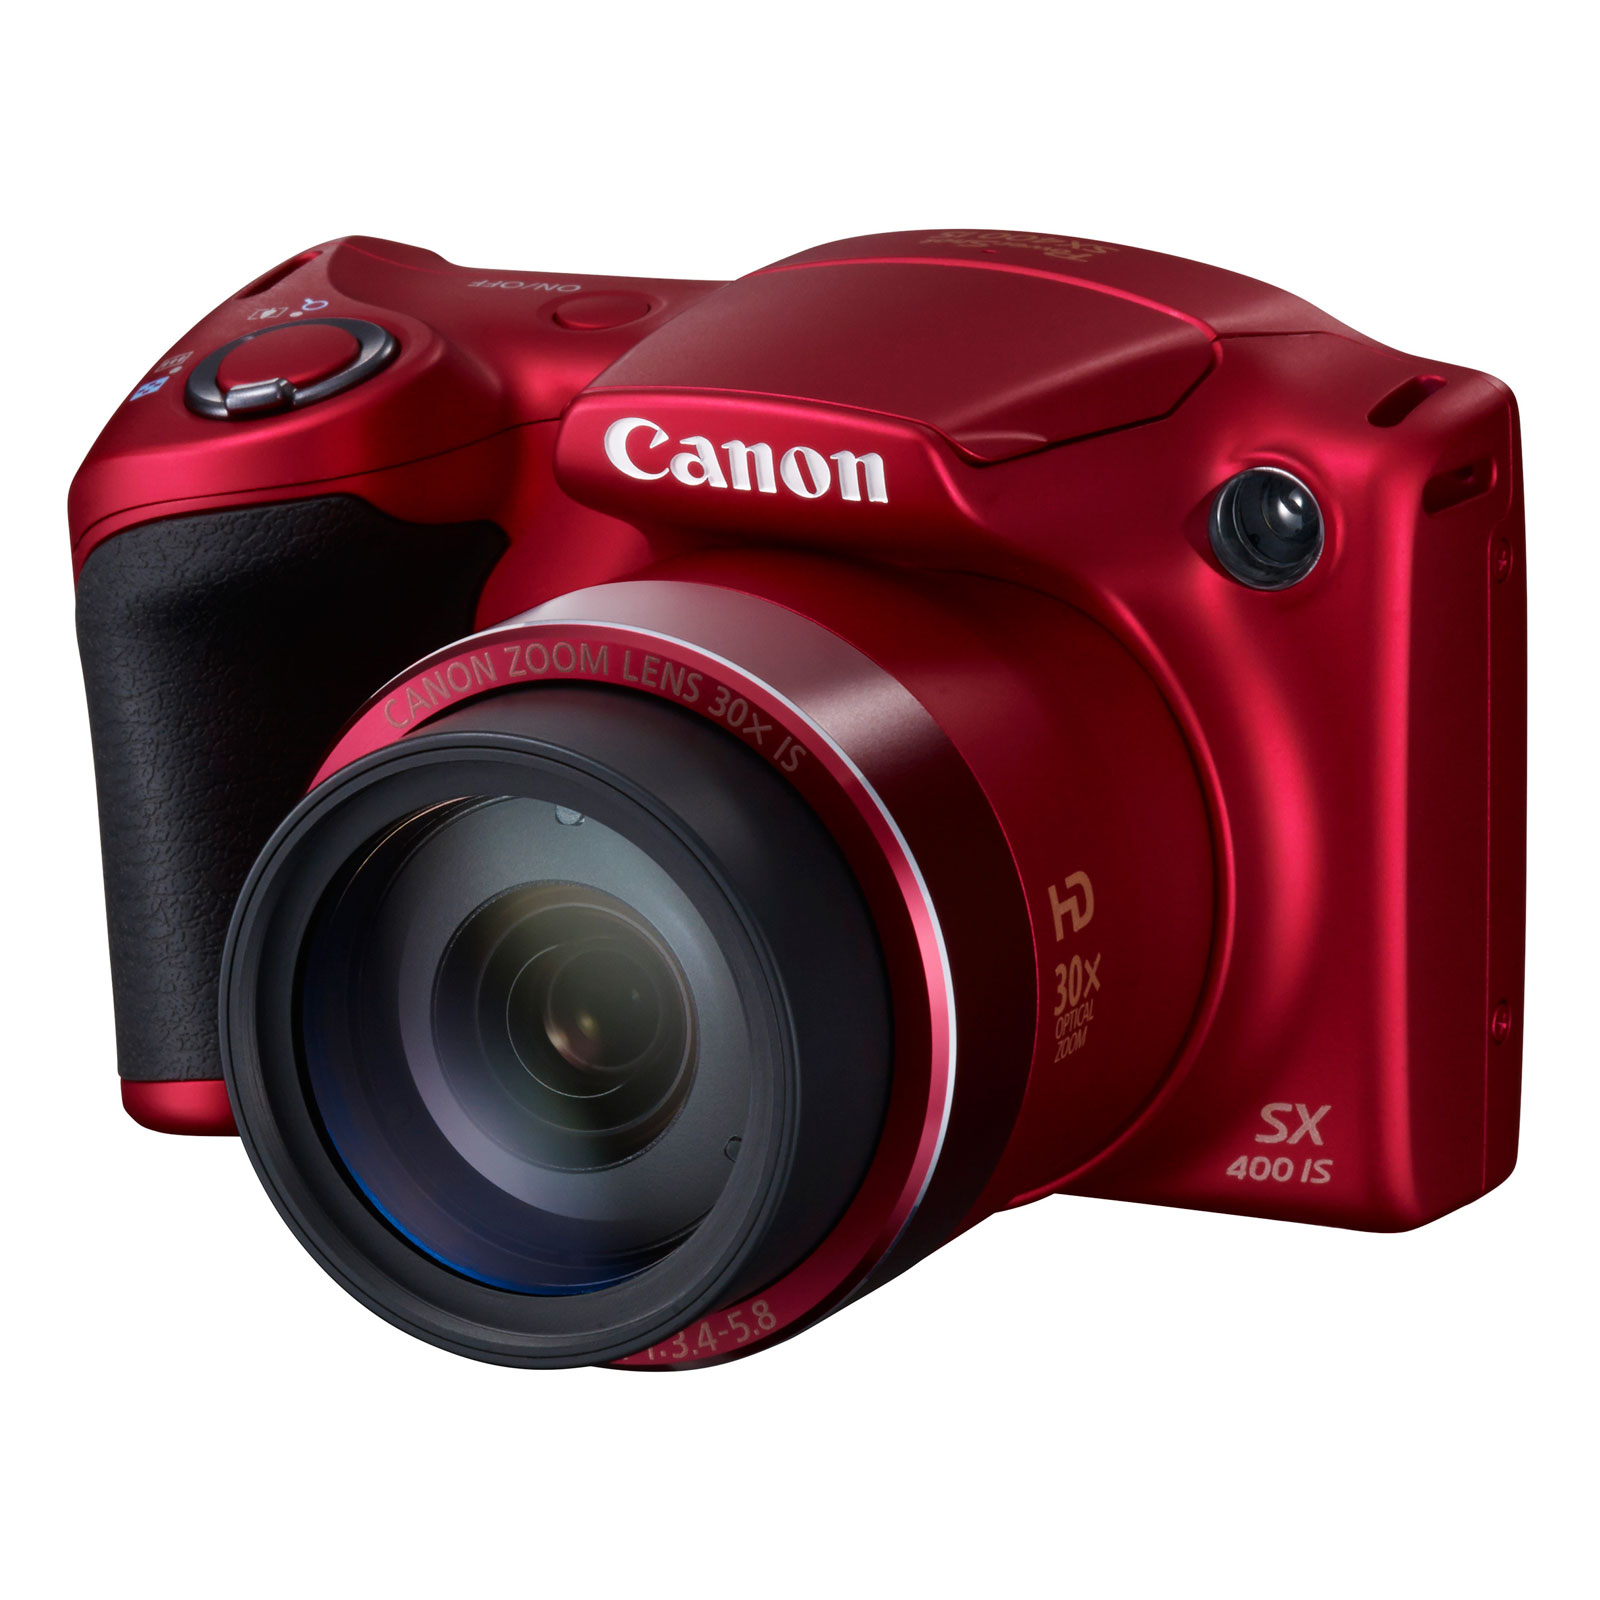 canon powershot sx400 rouge appareil photo num rique. Black Bedroom Furniture Sets. Home Design Ideas